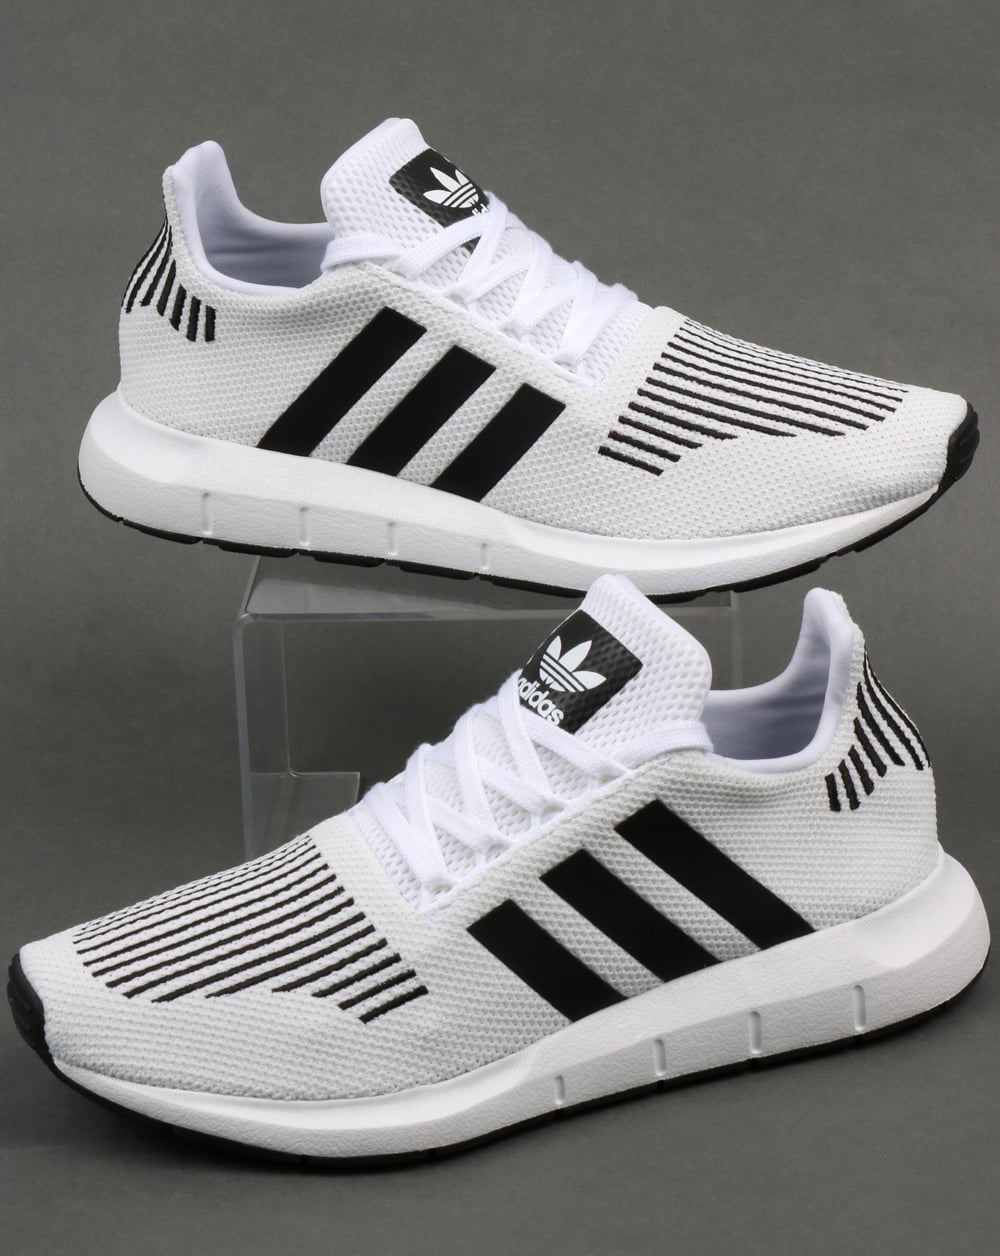 adidas swift run trainers white black grey runners prime knit shoes. Black Bedroom Furniture Sets. Home Design Ideas